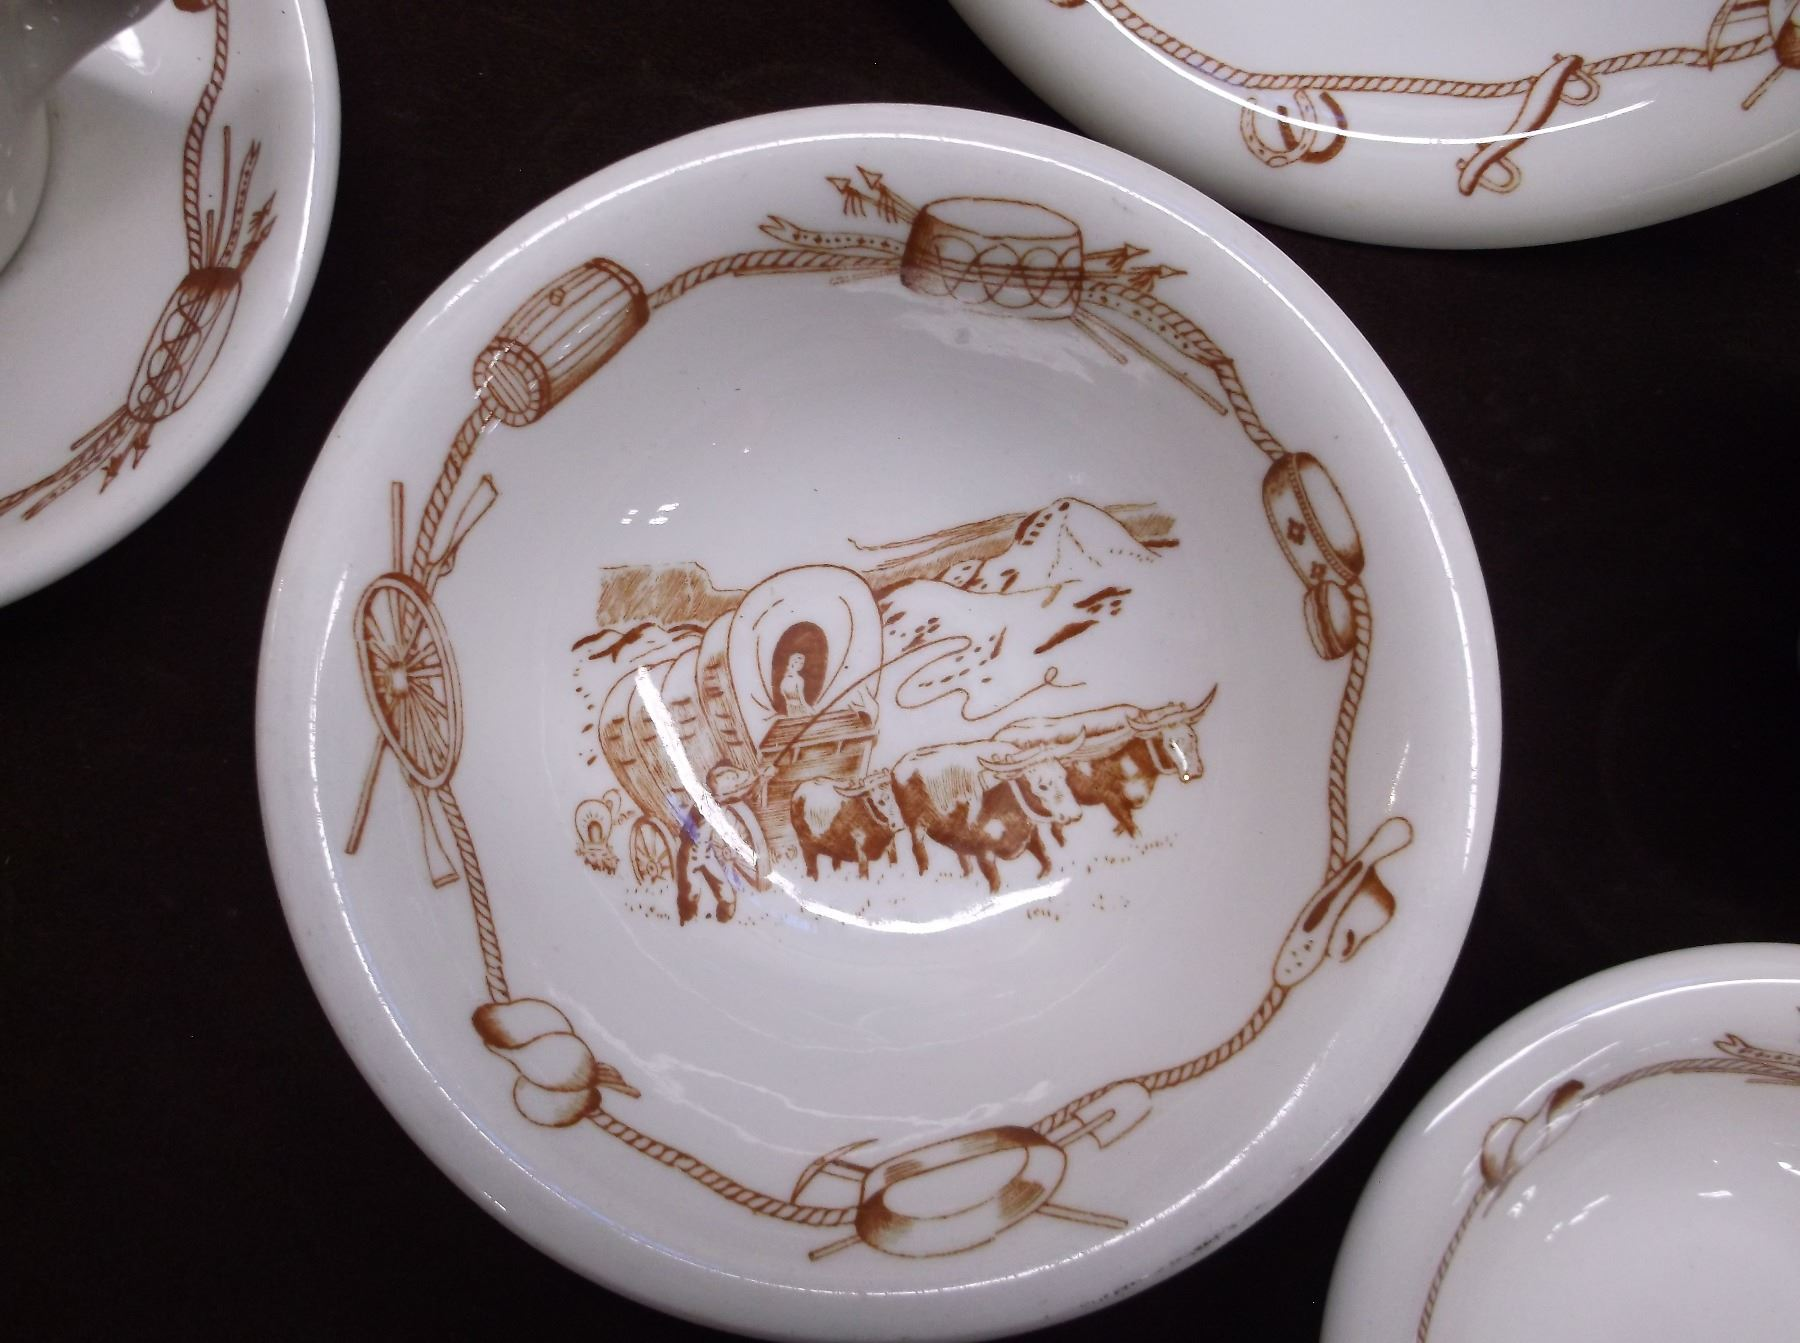 ... Image 2  This is a Used Western Dinnerware Set from Harolds Club in Reno- ... & This is a Used Western Dinnerware Set from Harolds Club in Reno- It ...